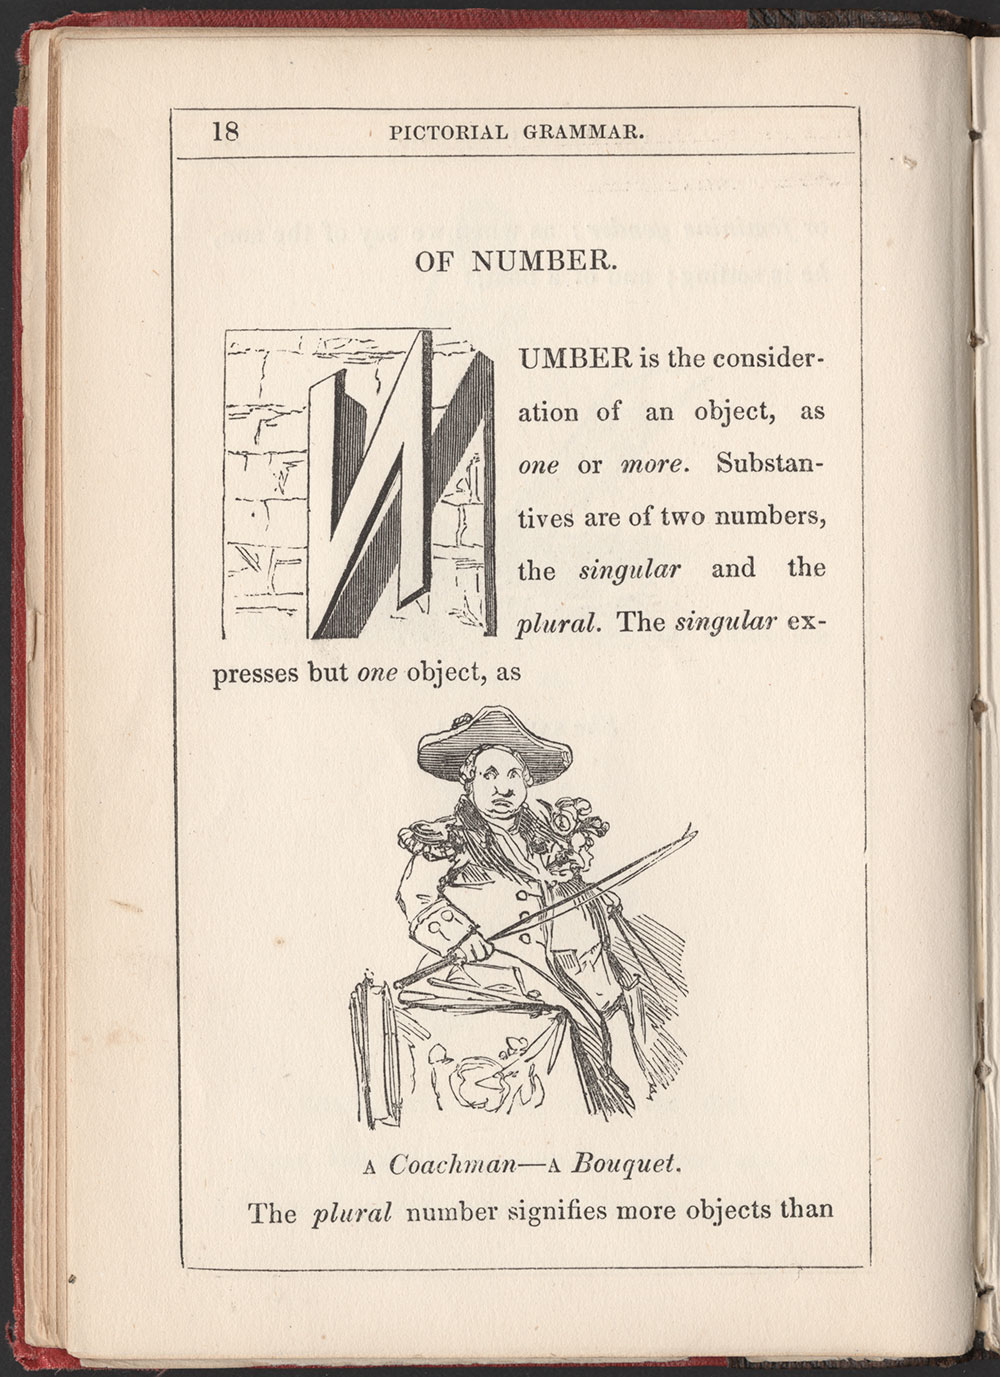 Alfred Crowquill. The Pictorial Grammar. London: Harvey and Darton, 1842. #1